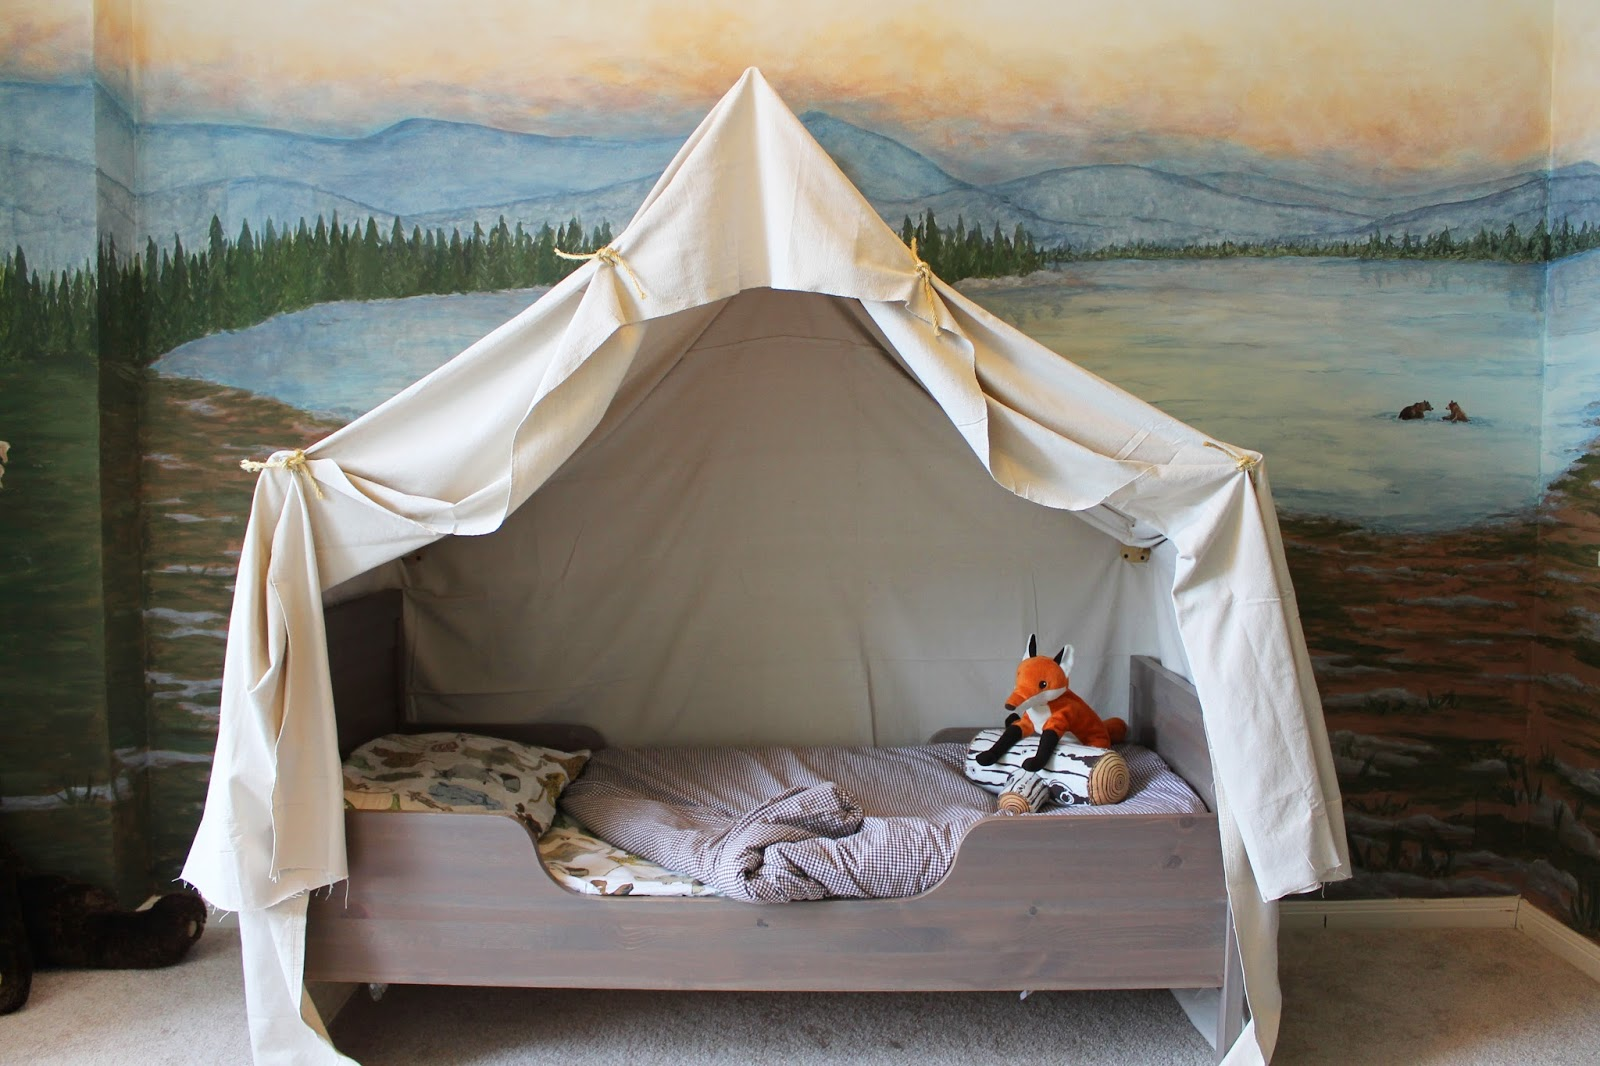 Awesome Tent Bedroom #11 - How To Build A Kids Camping Tent Bed Canopy, The Ragged Wren On  Remodelaholic